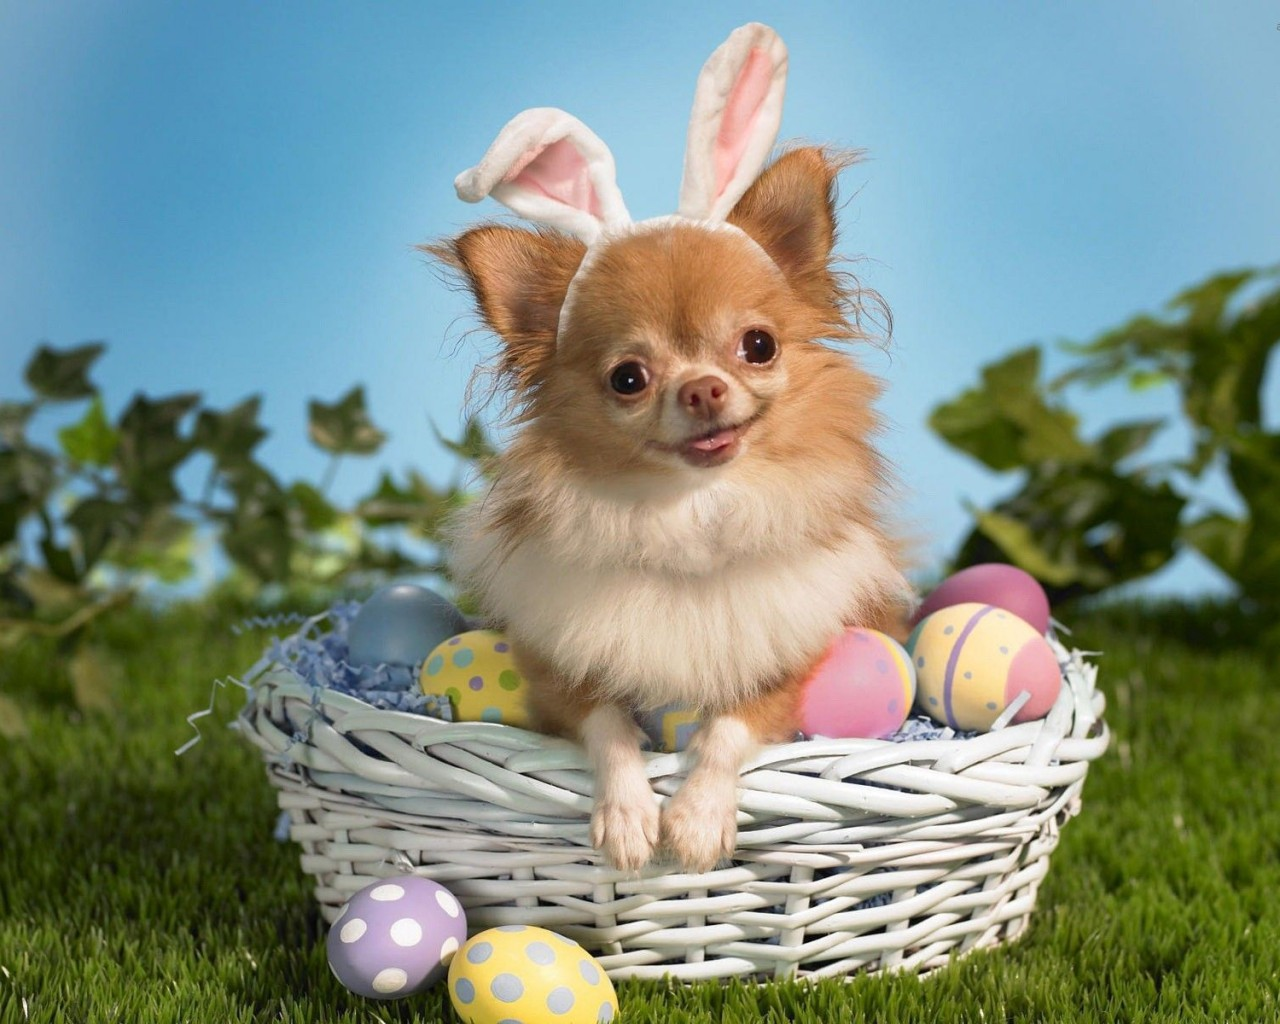 Cute-puppy-basket-egg-1024x1280